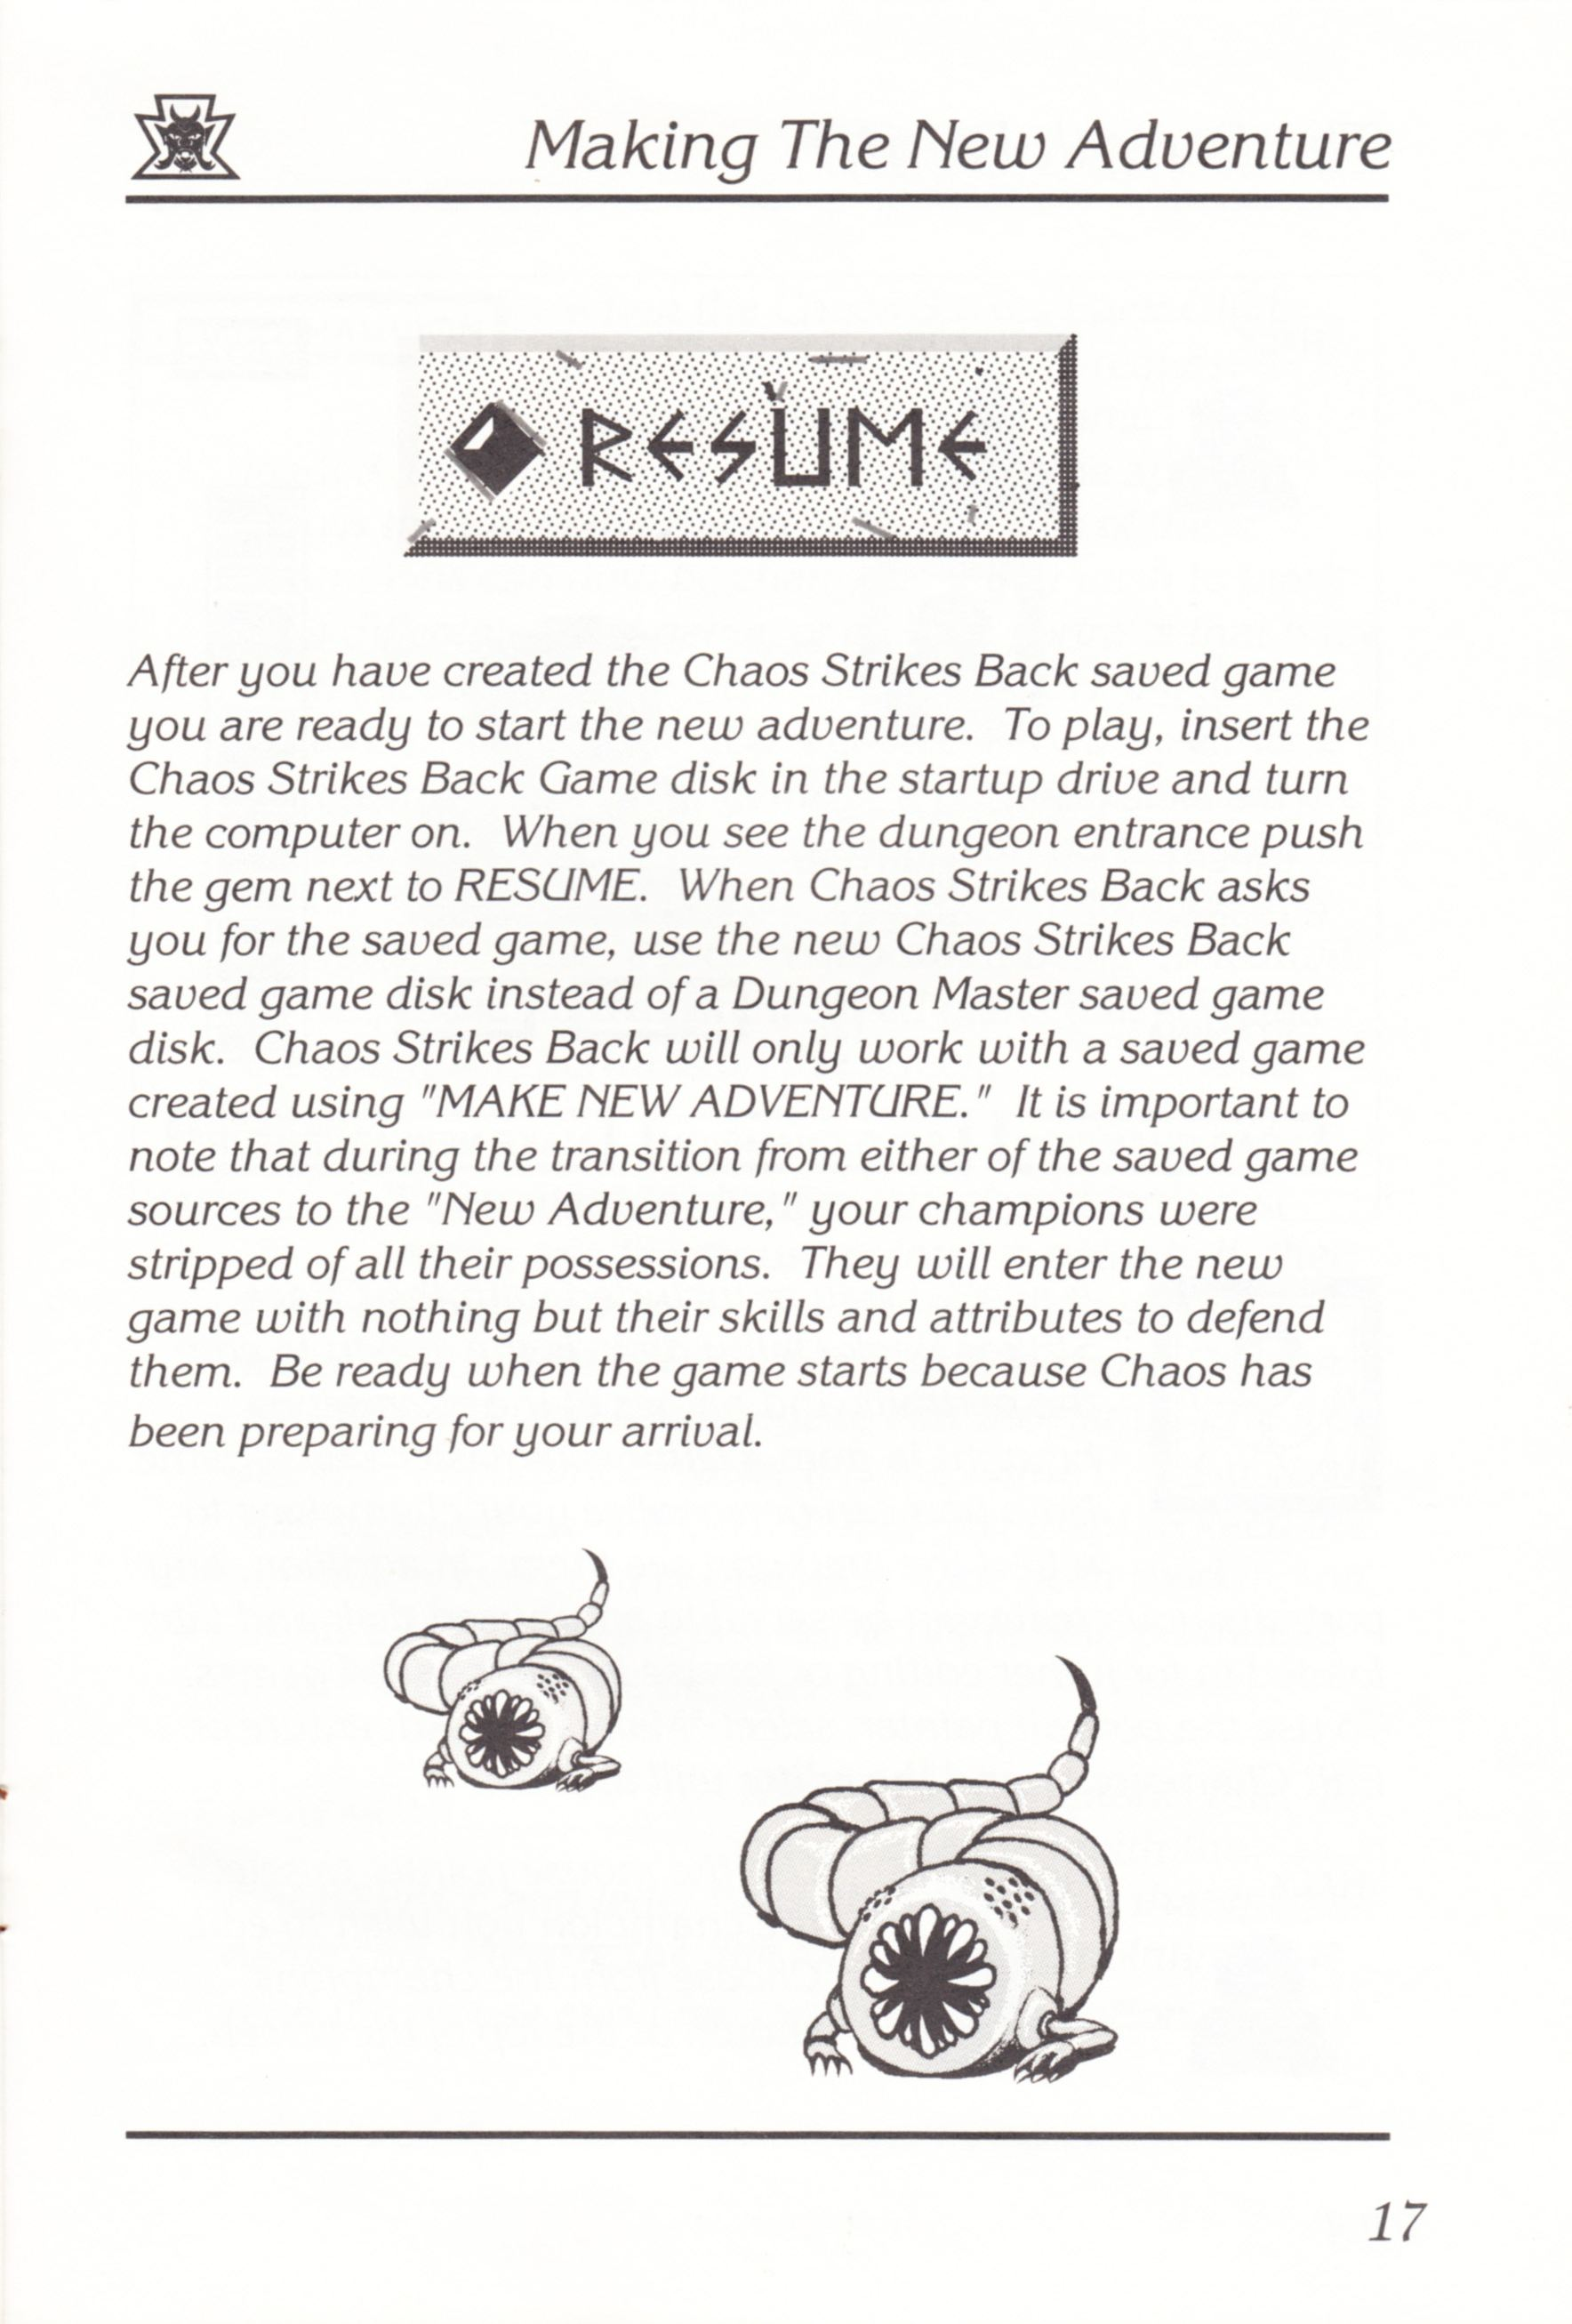 Game - Chaos Strikes Back - UK - Atari ST - Manual - Page 019 - Scan